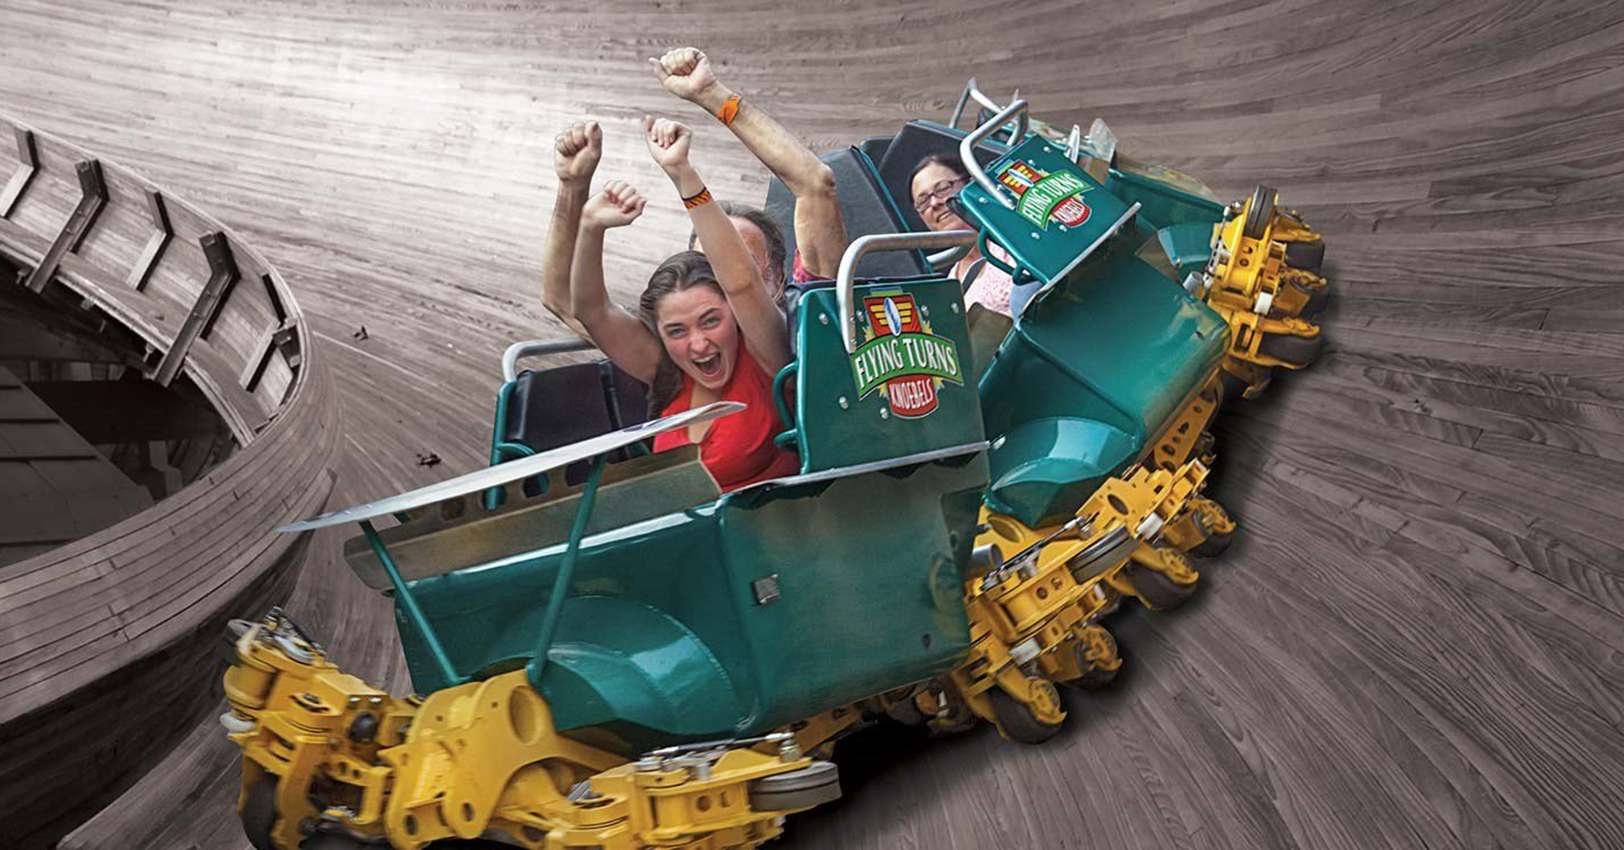 people screaming on the Flying Turns bobsled coaster at Knoebels